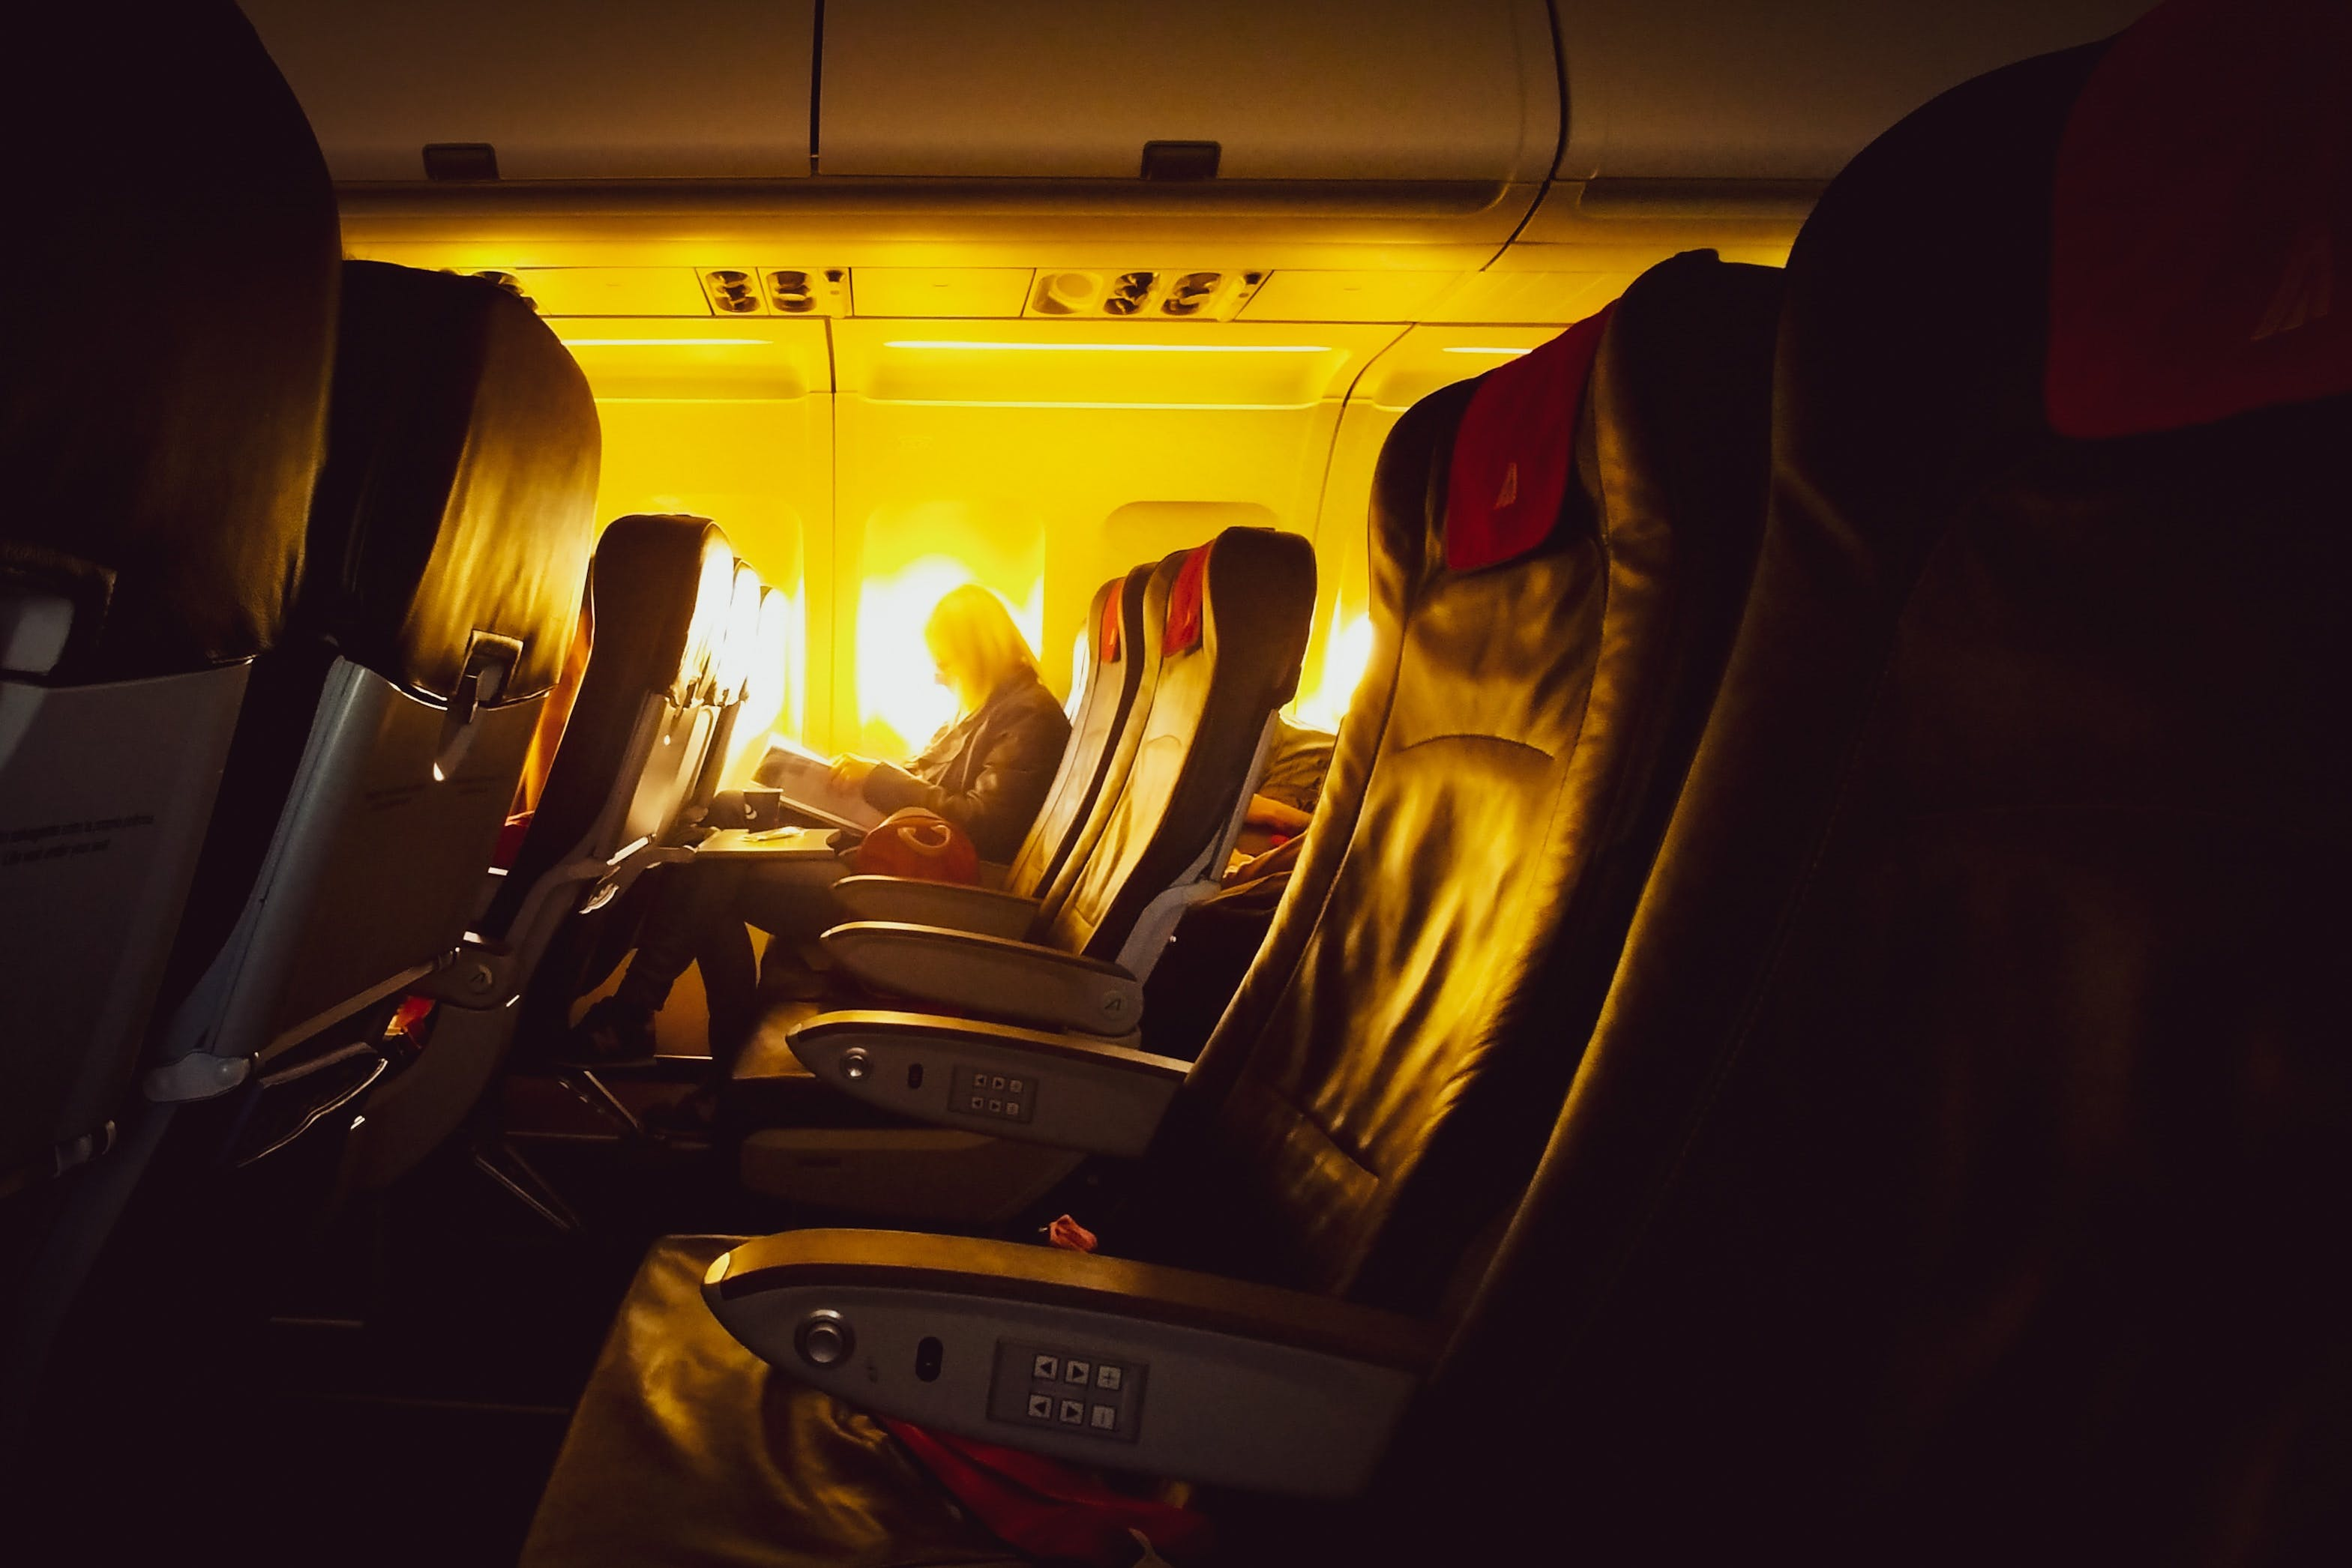 Row of airline seats with lone passenger reading a book